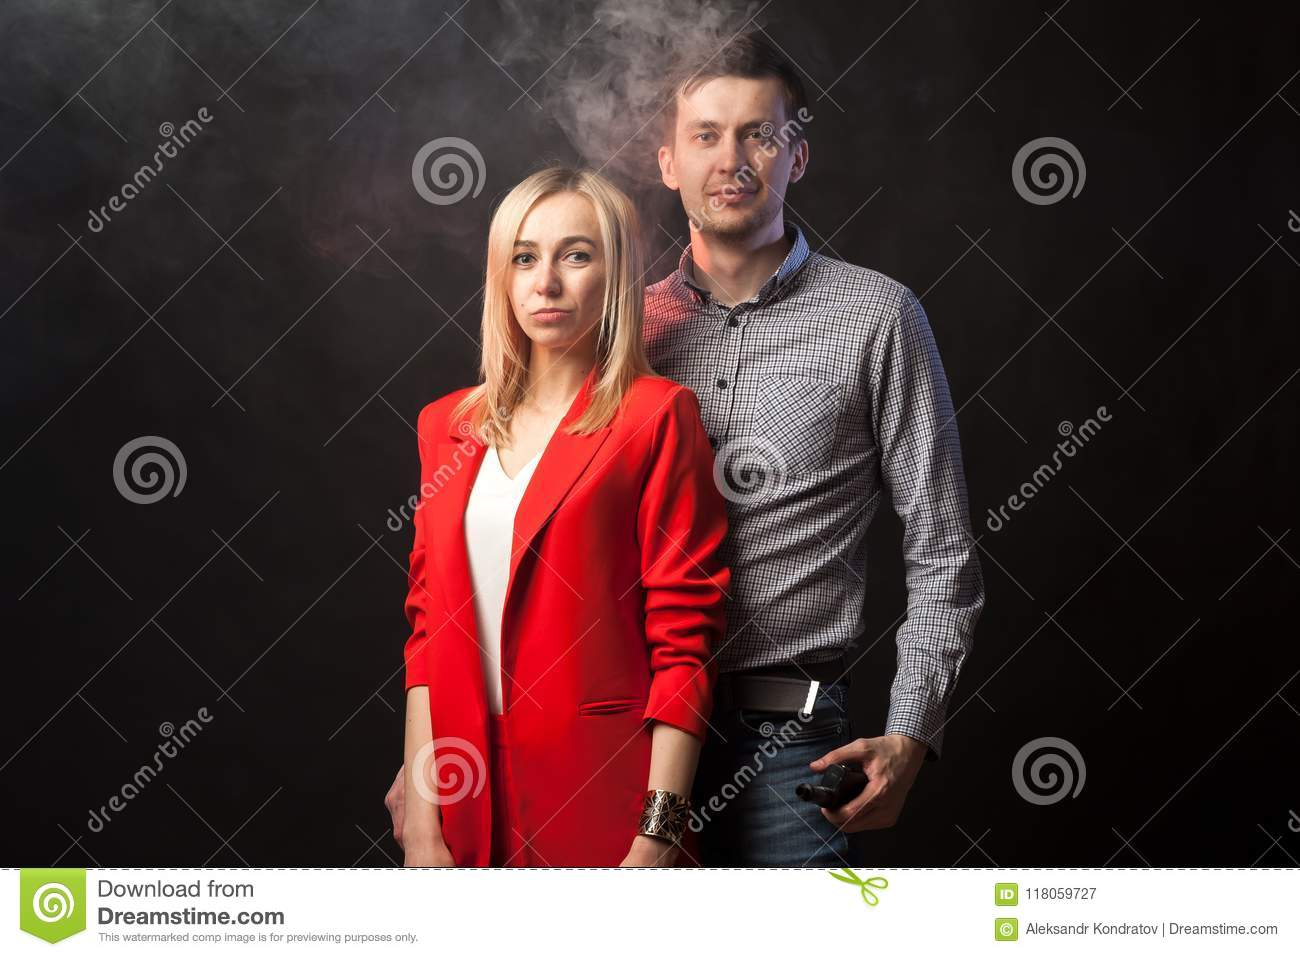 Blond girl in brightly red suit with jacket and white blouse and tall dark-haired guy